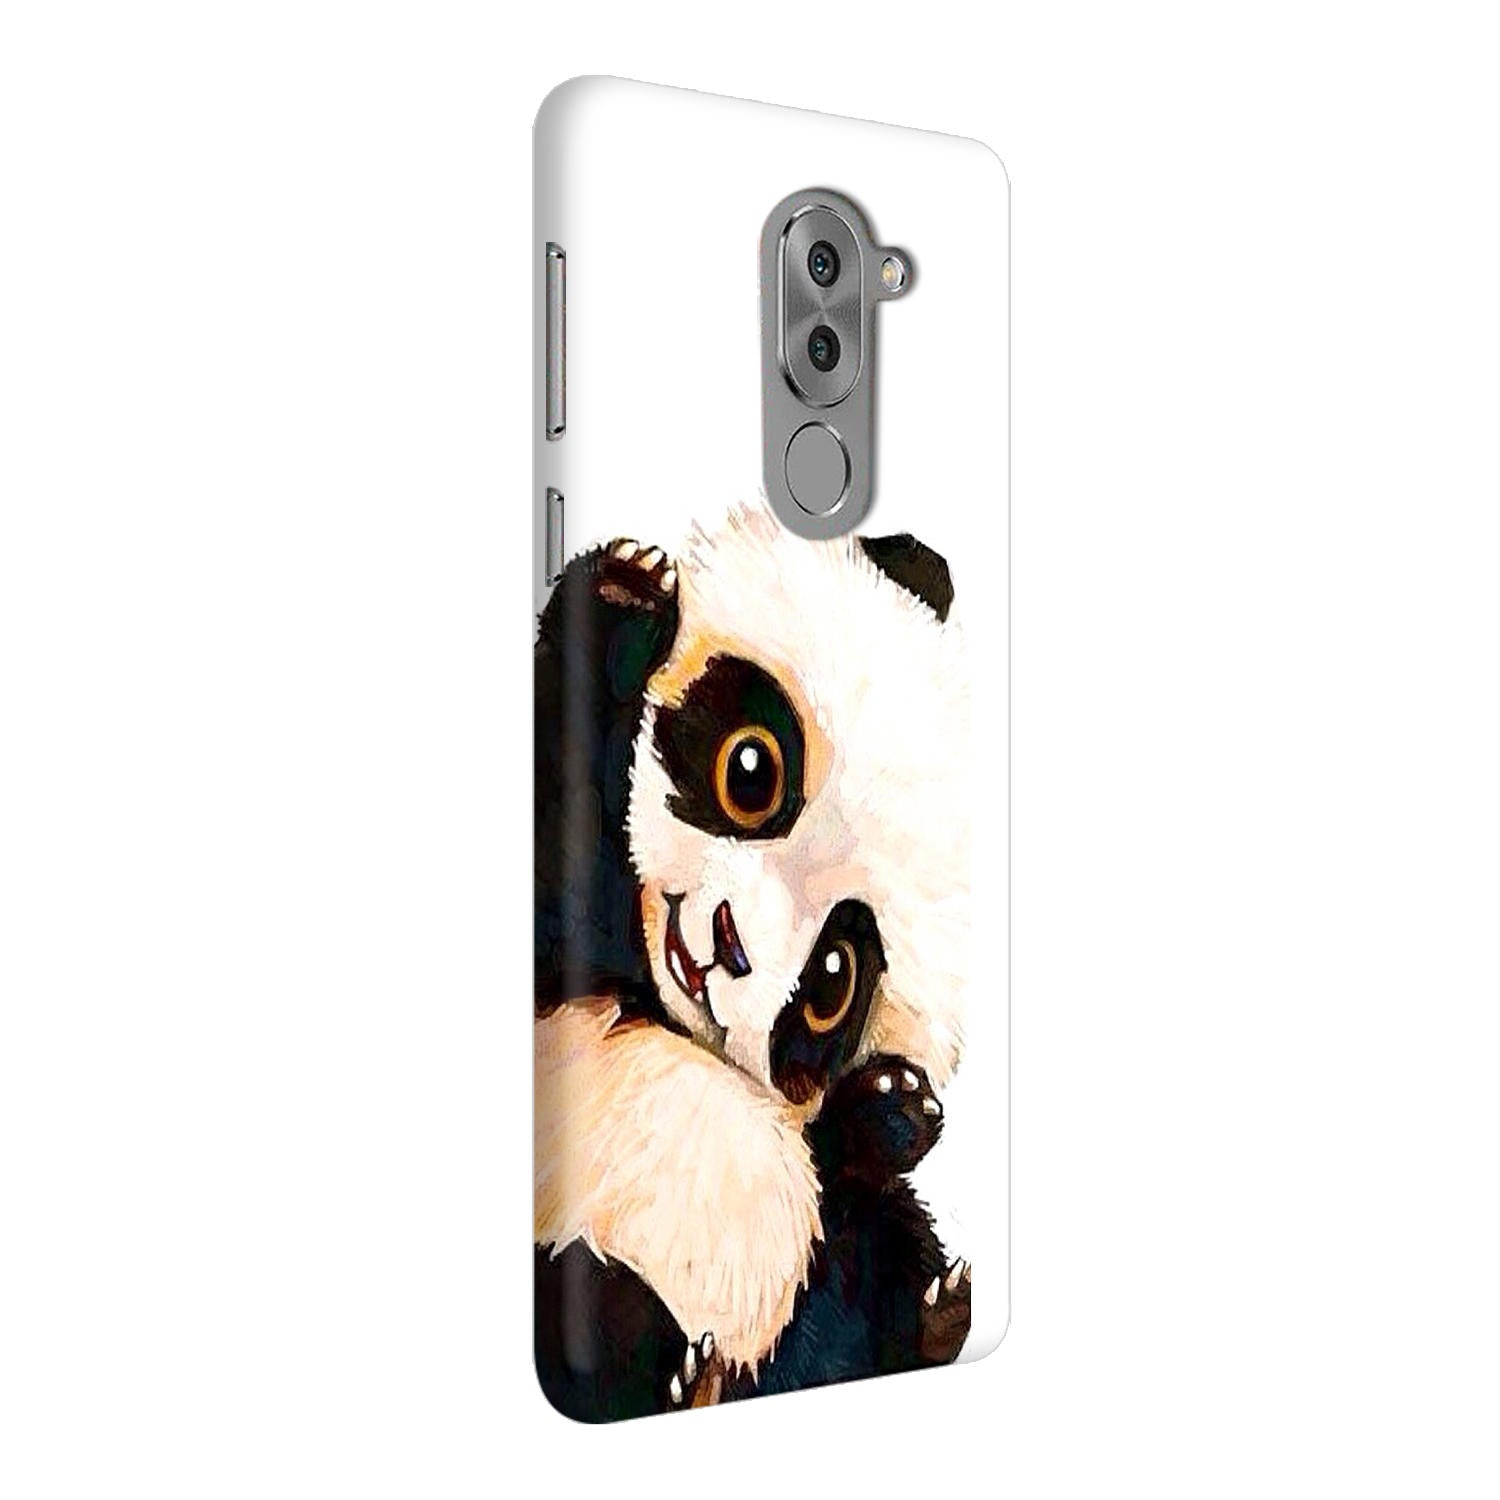 Cute Baby Panda Honor 6X Mobile Cover Case